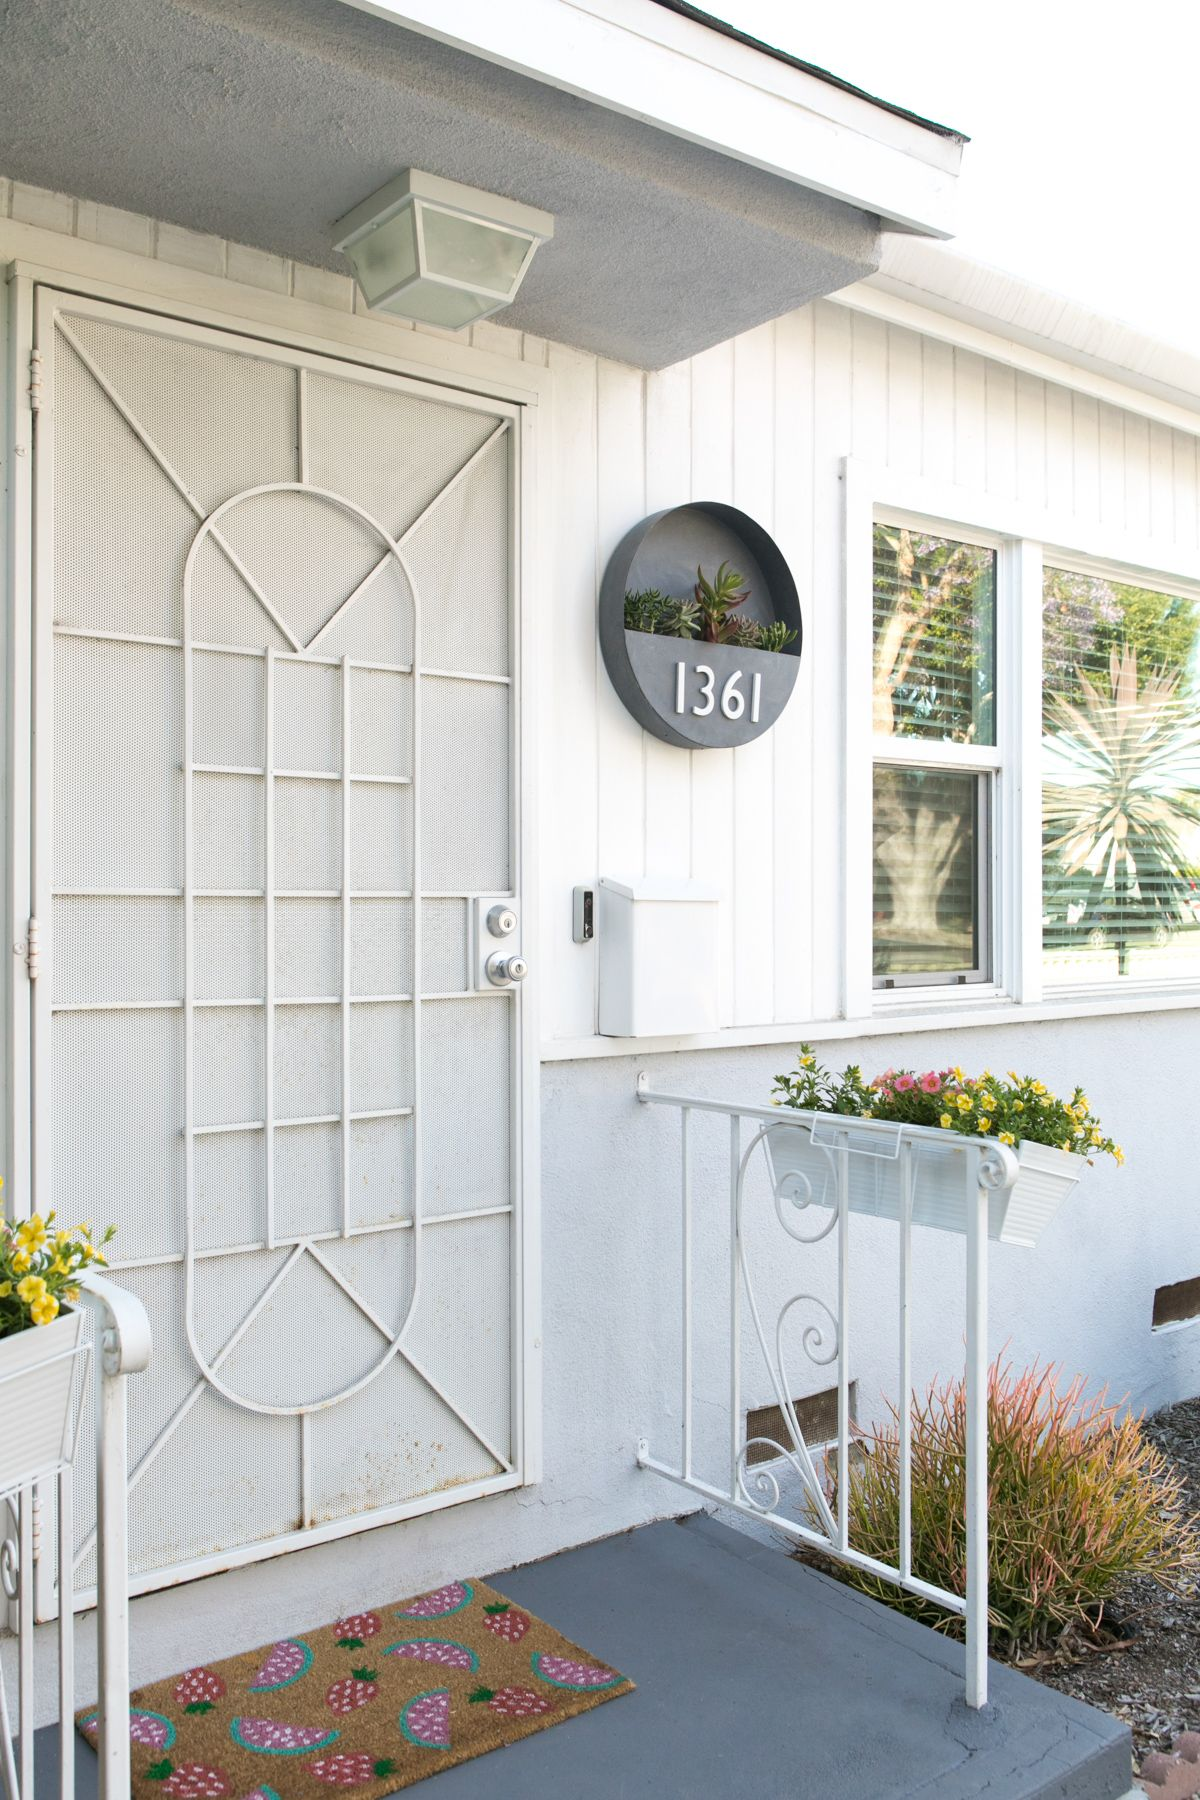 DIY House Number Planter and Rental Friendly Front Porch Decor